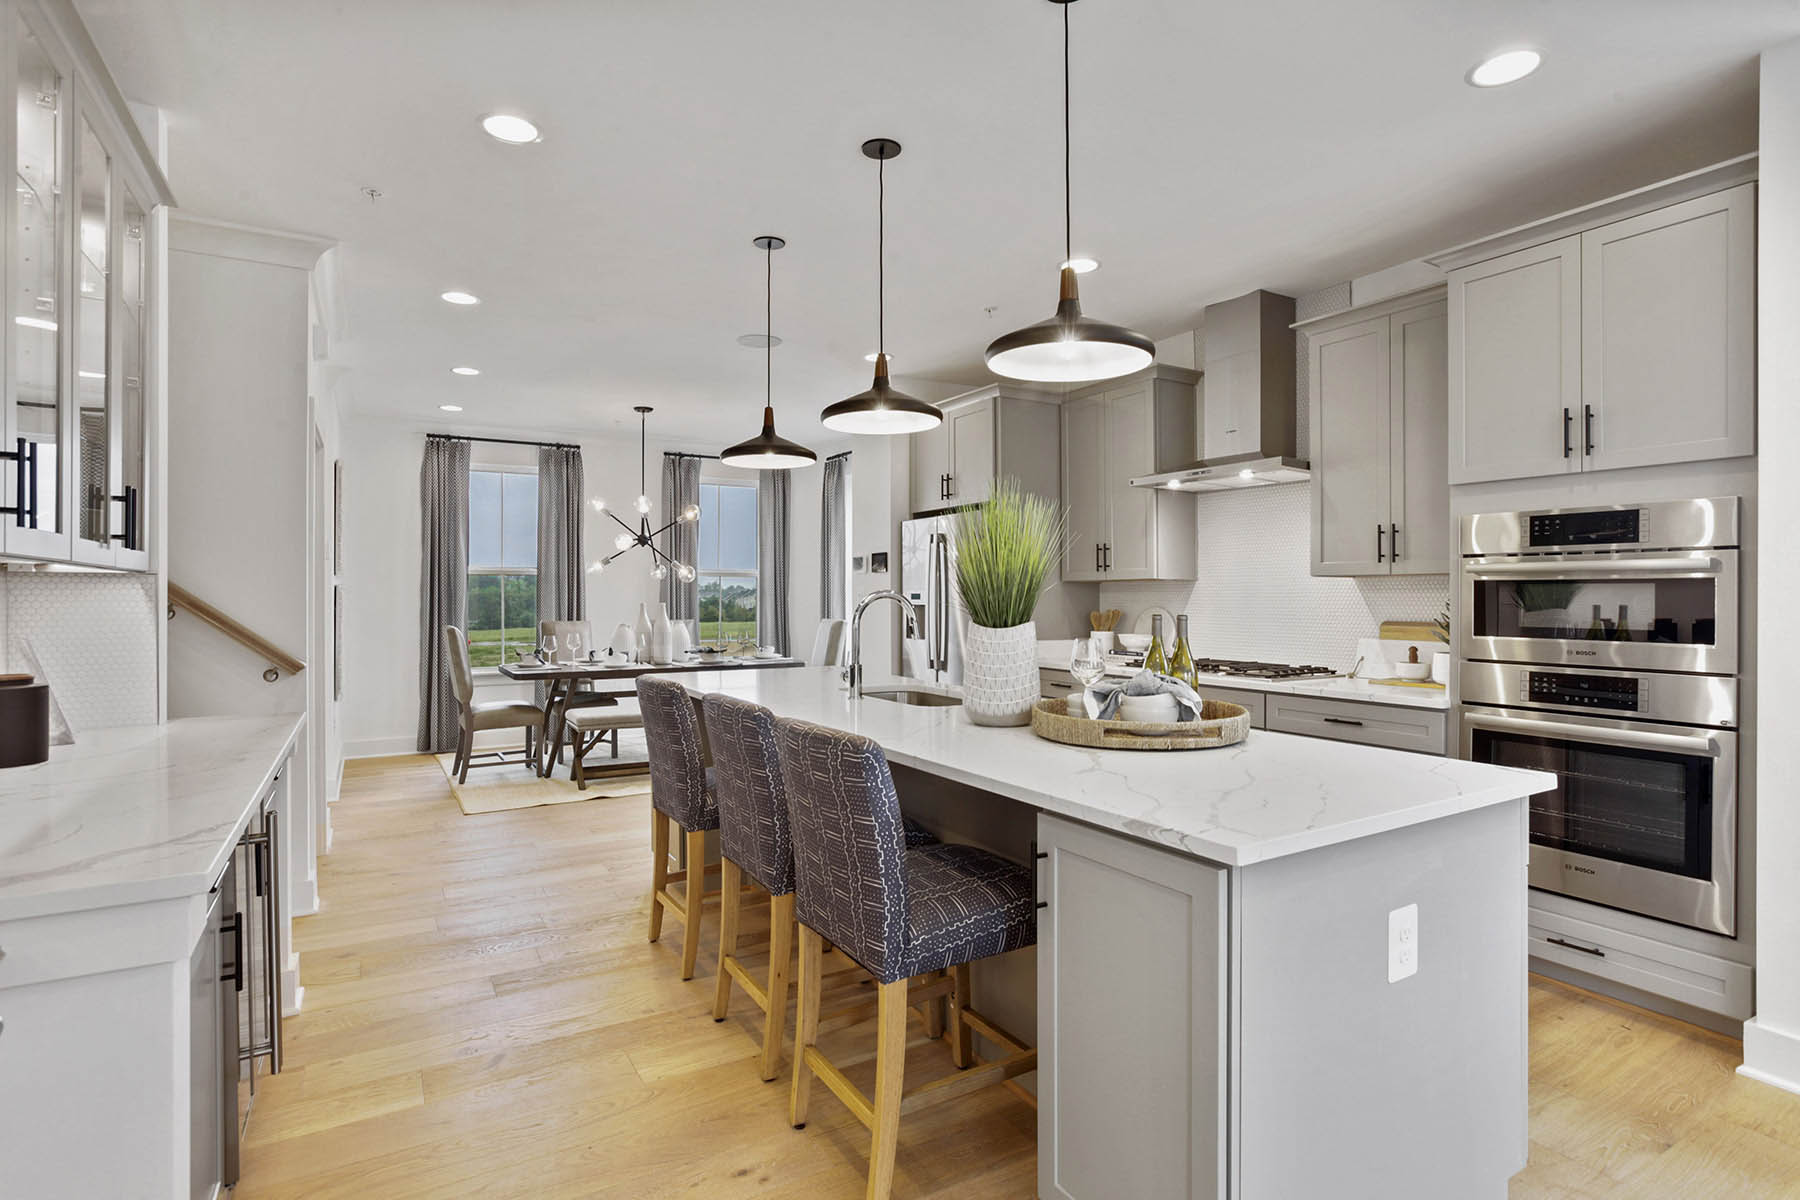 Kitchens Gallery, New Homes in Maryland, Virginia, Washington D.C.